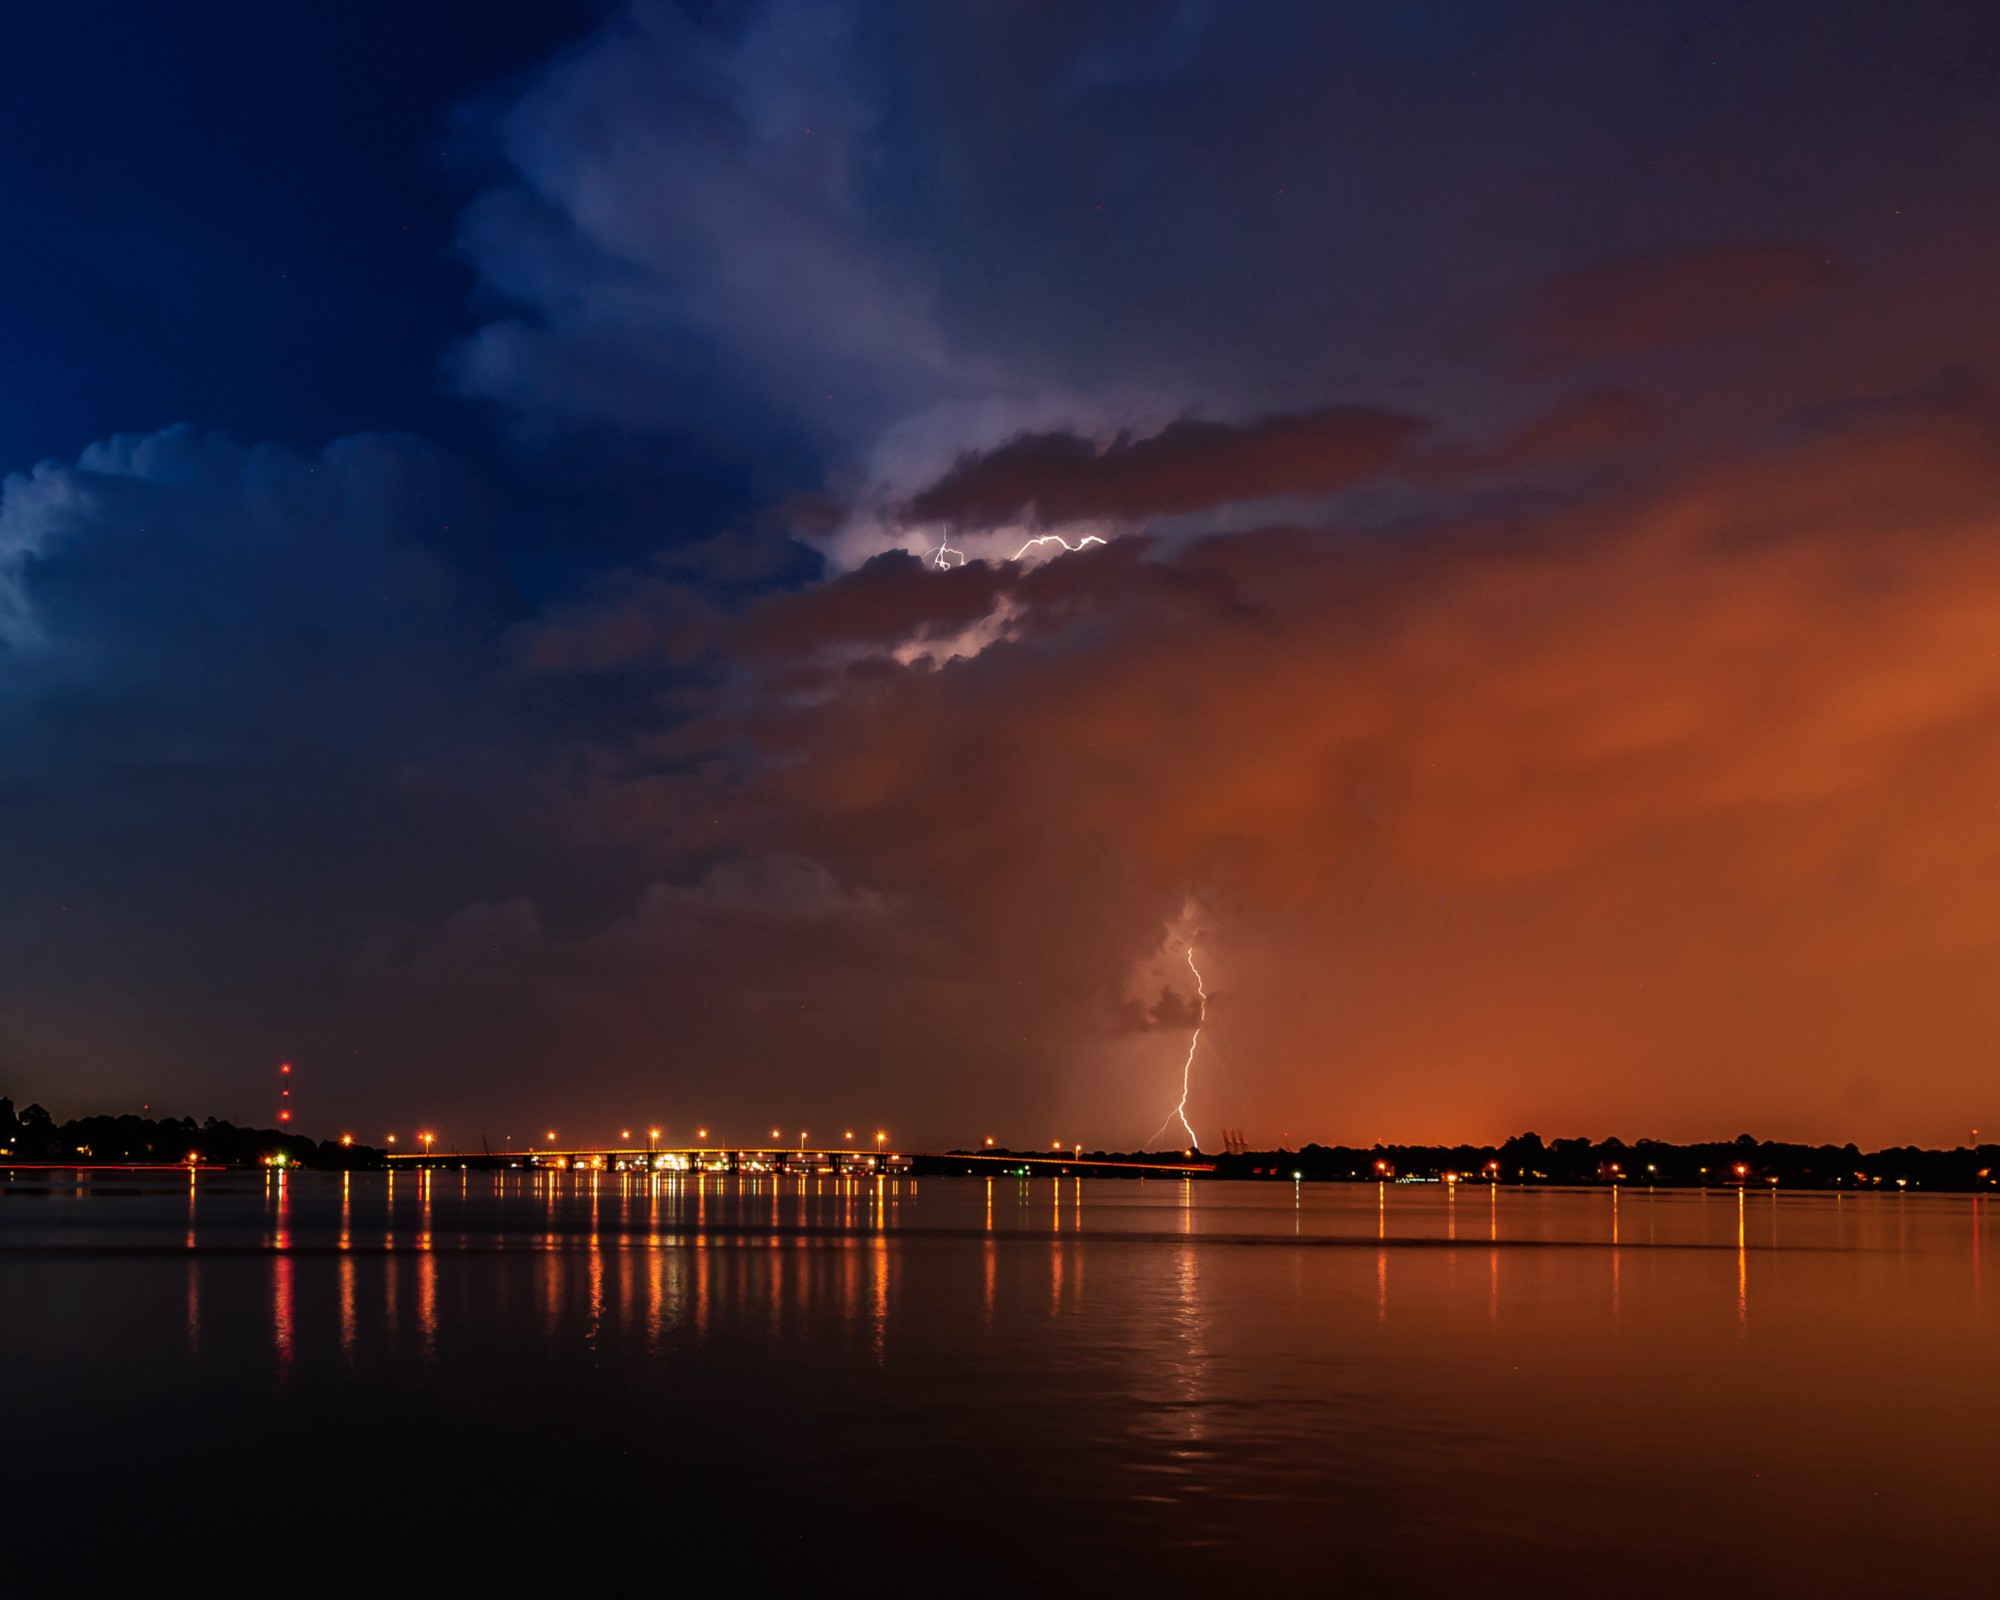 Lightening strikes light up the clouds above a body of water while lightening strikes the shore.